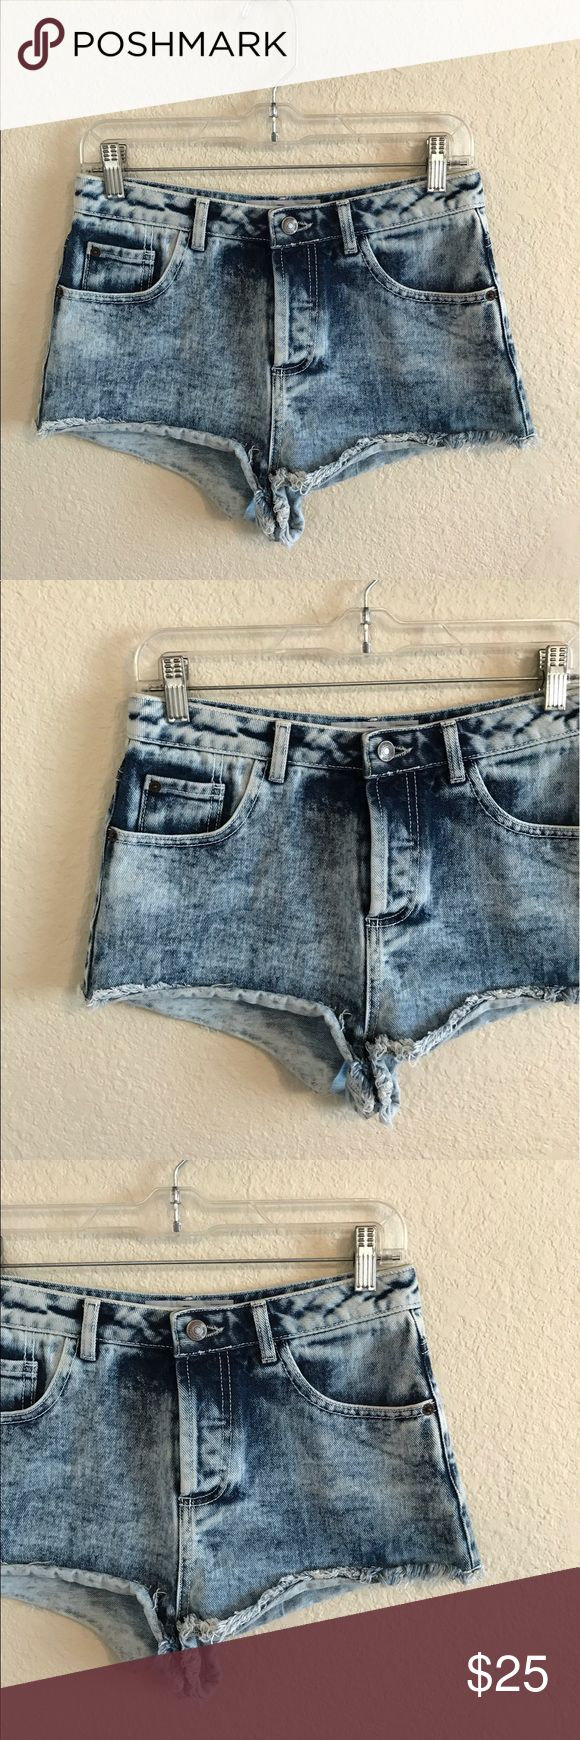 """TOPSHOP women's Blue Acid Wash Shorts 6 TOPSHOP women's Super Cute Blue Acid Wash Shorts.  Size: 26.  Inseam: 1.5"""" In Great condition! If you have any questions feel free to ask! Topshop Shorts Jean Shorts"""